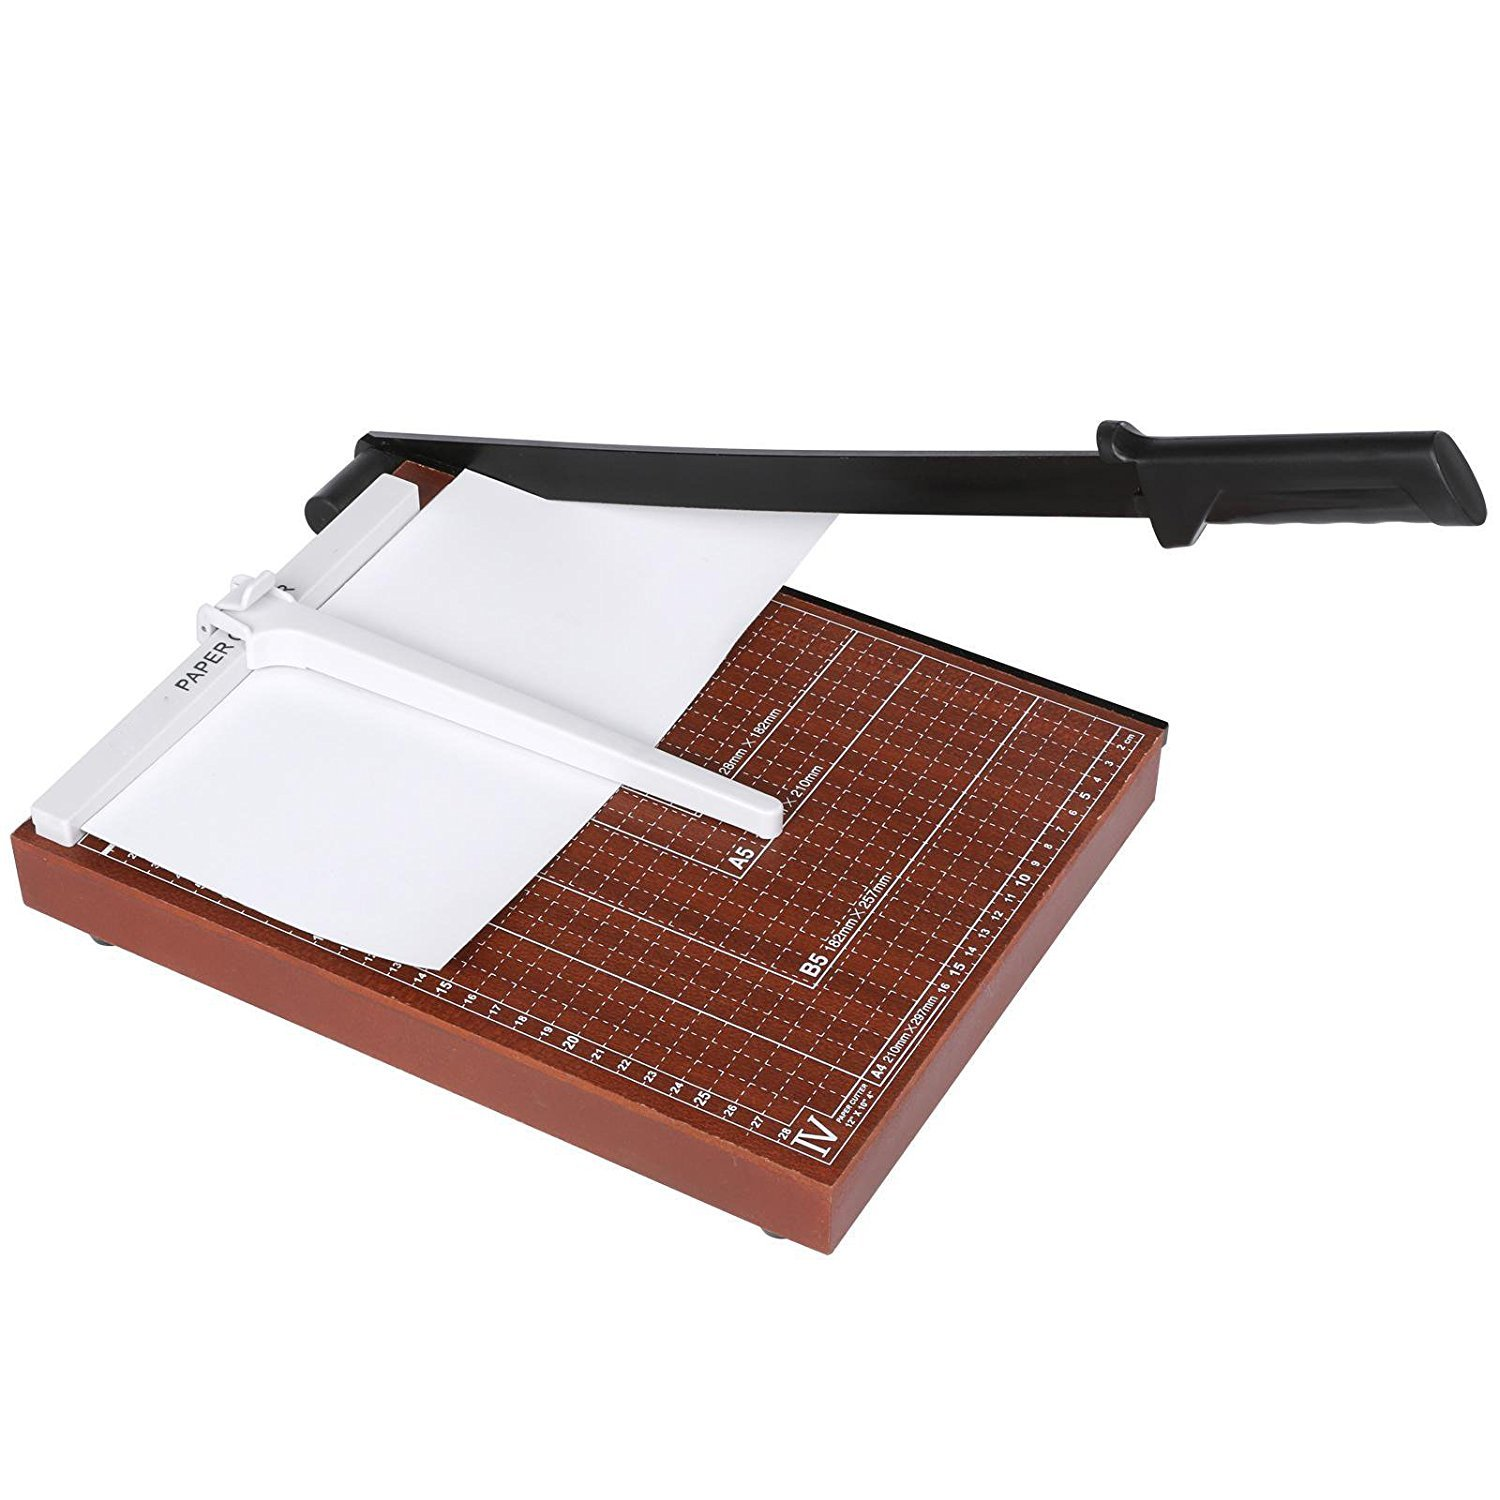 sholdnut Professional Wooden Base A4 Paper Cutter, Heavy Duty Universal Use Paper Cutting Tool, 12 Sheet Capacity - for Home and Office